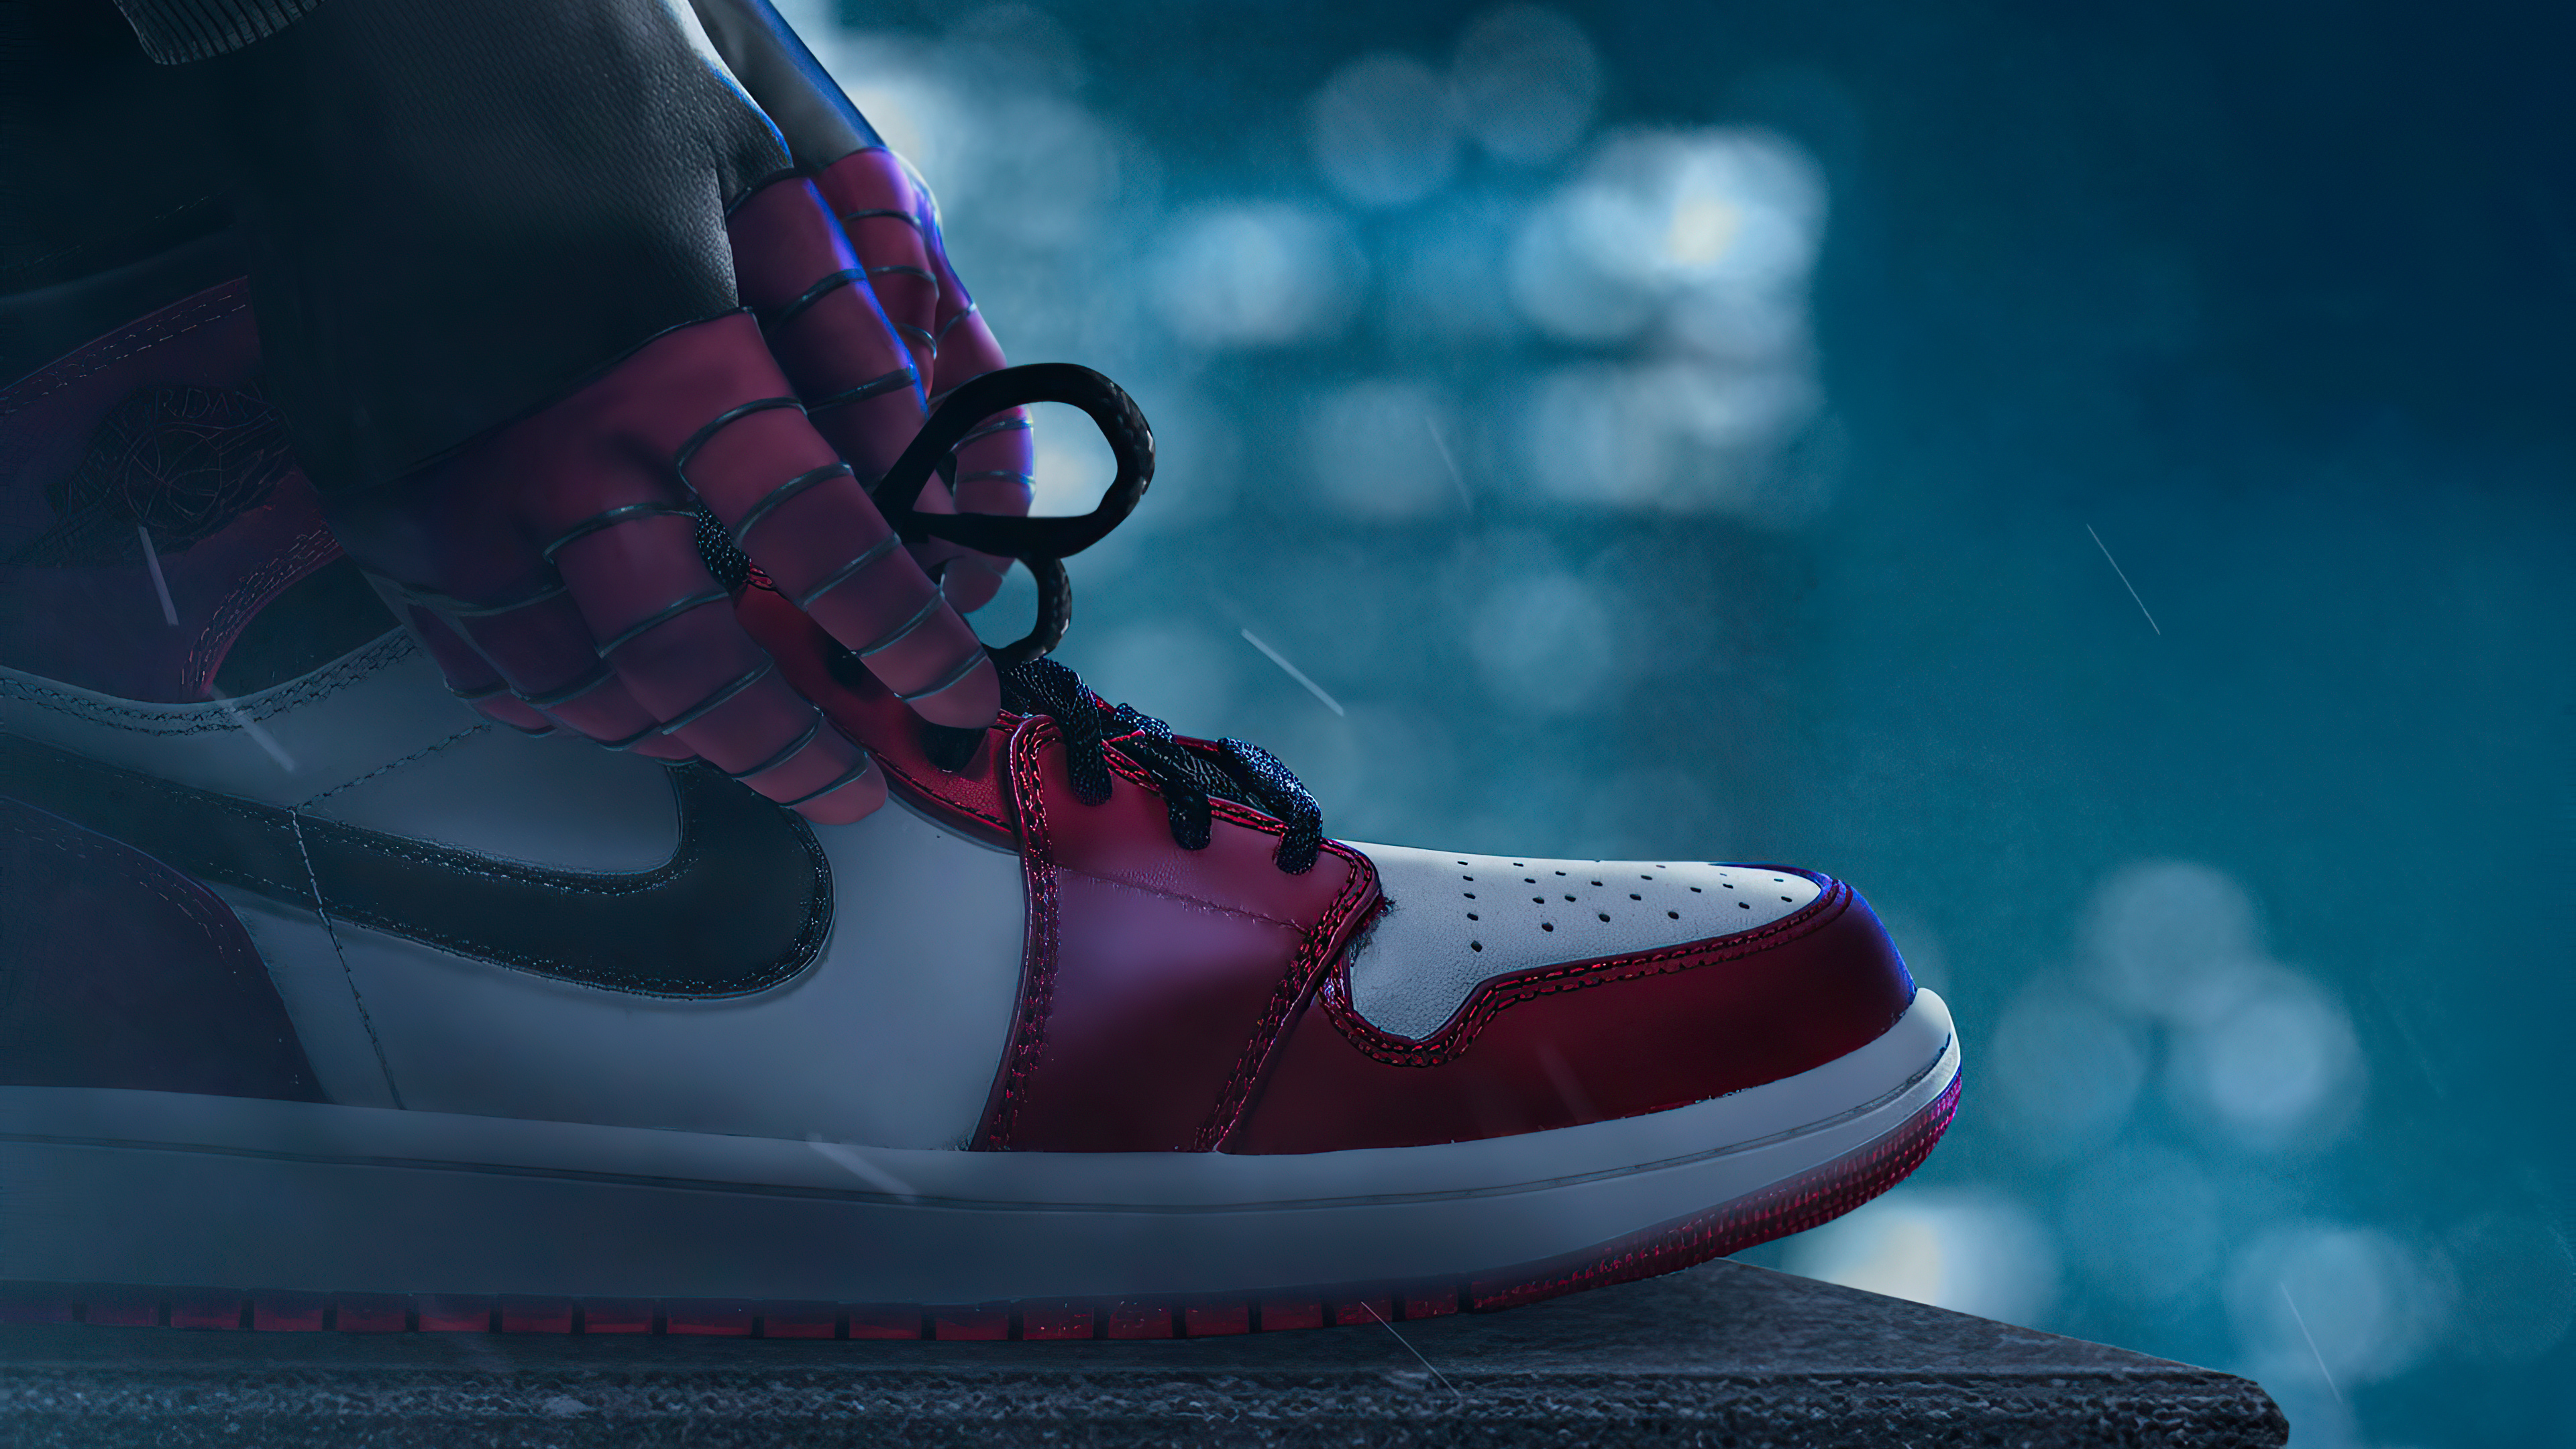 Air Jordan 1 Miles Morales Hd Superheroes 4k Wallpapers Images Backgrounds Photos And Pictures